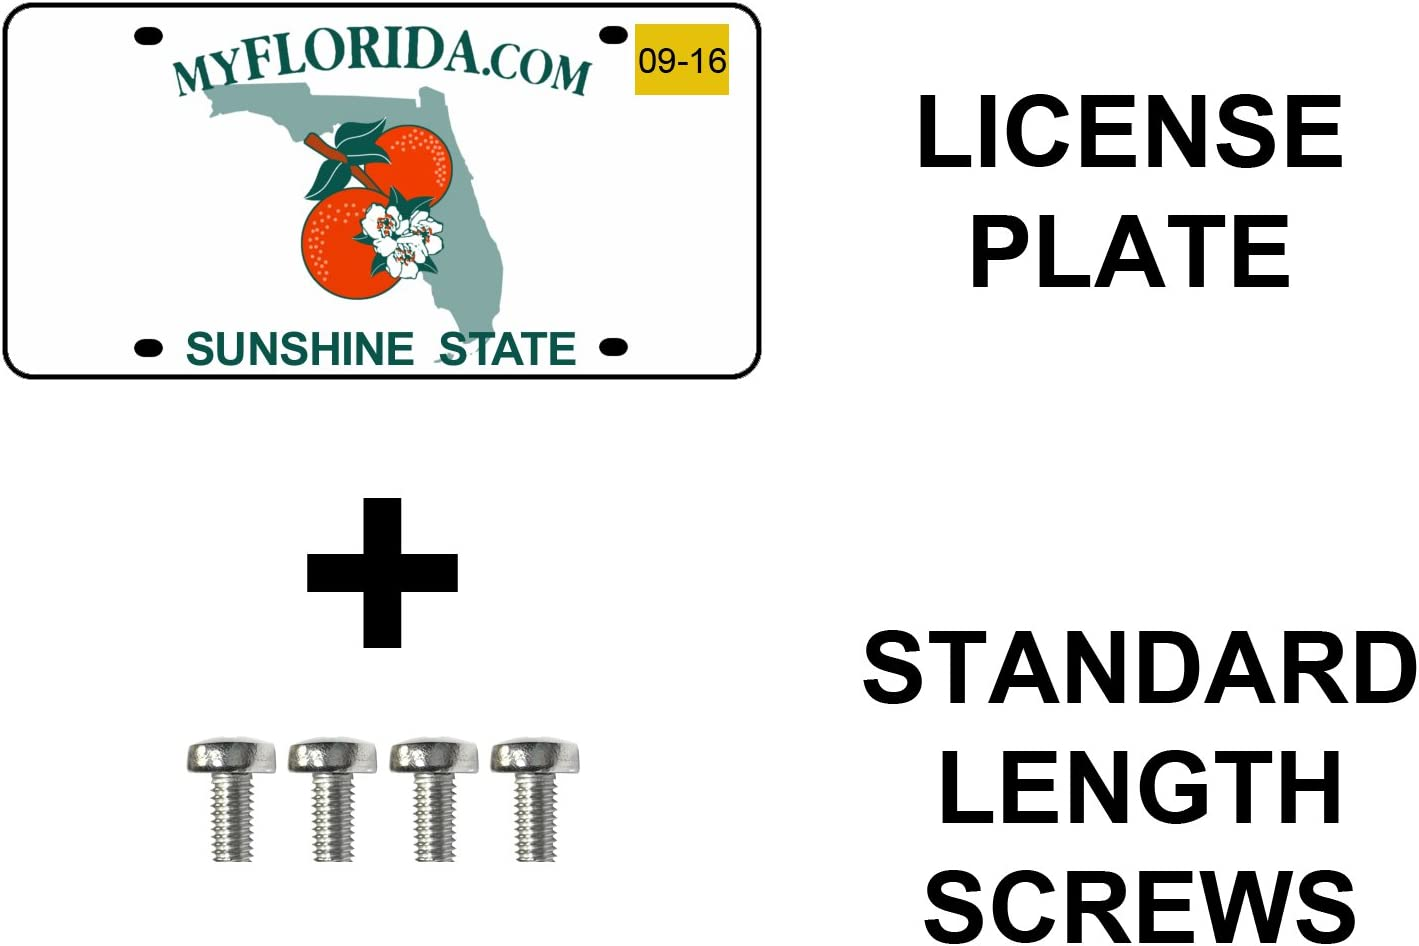 Extended Length Stainless Steel License Plate Screws ~ for All BMW Prime Ave Standard Pack of 8